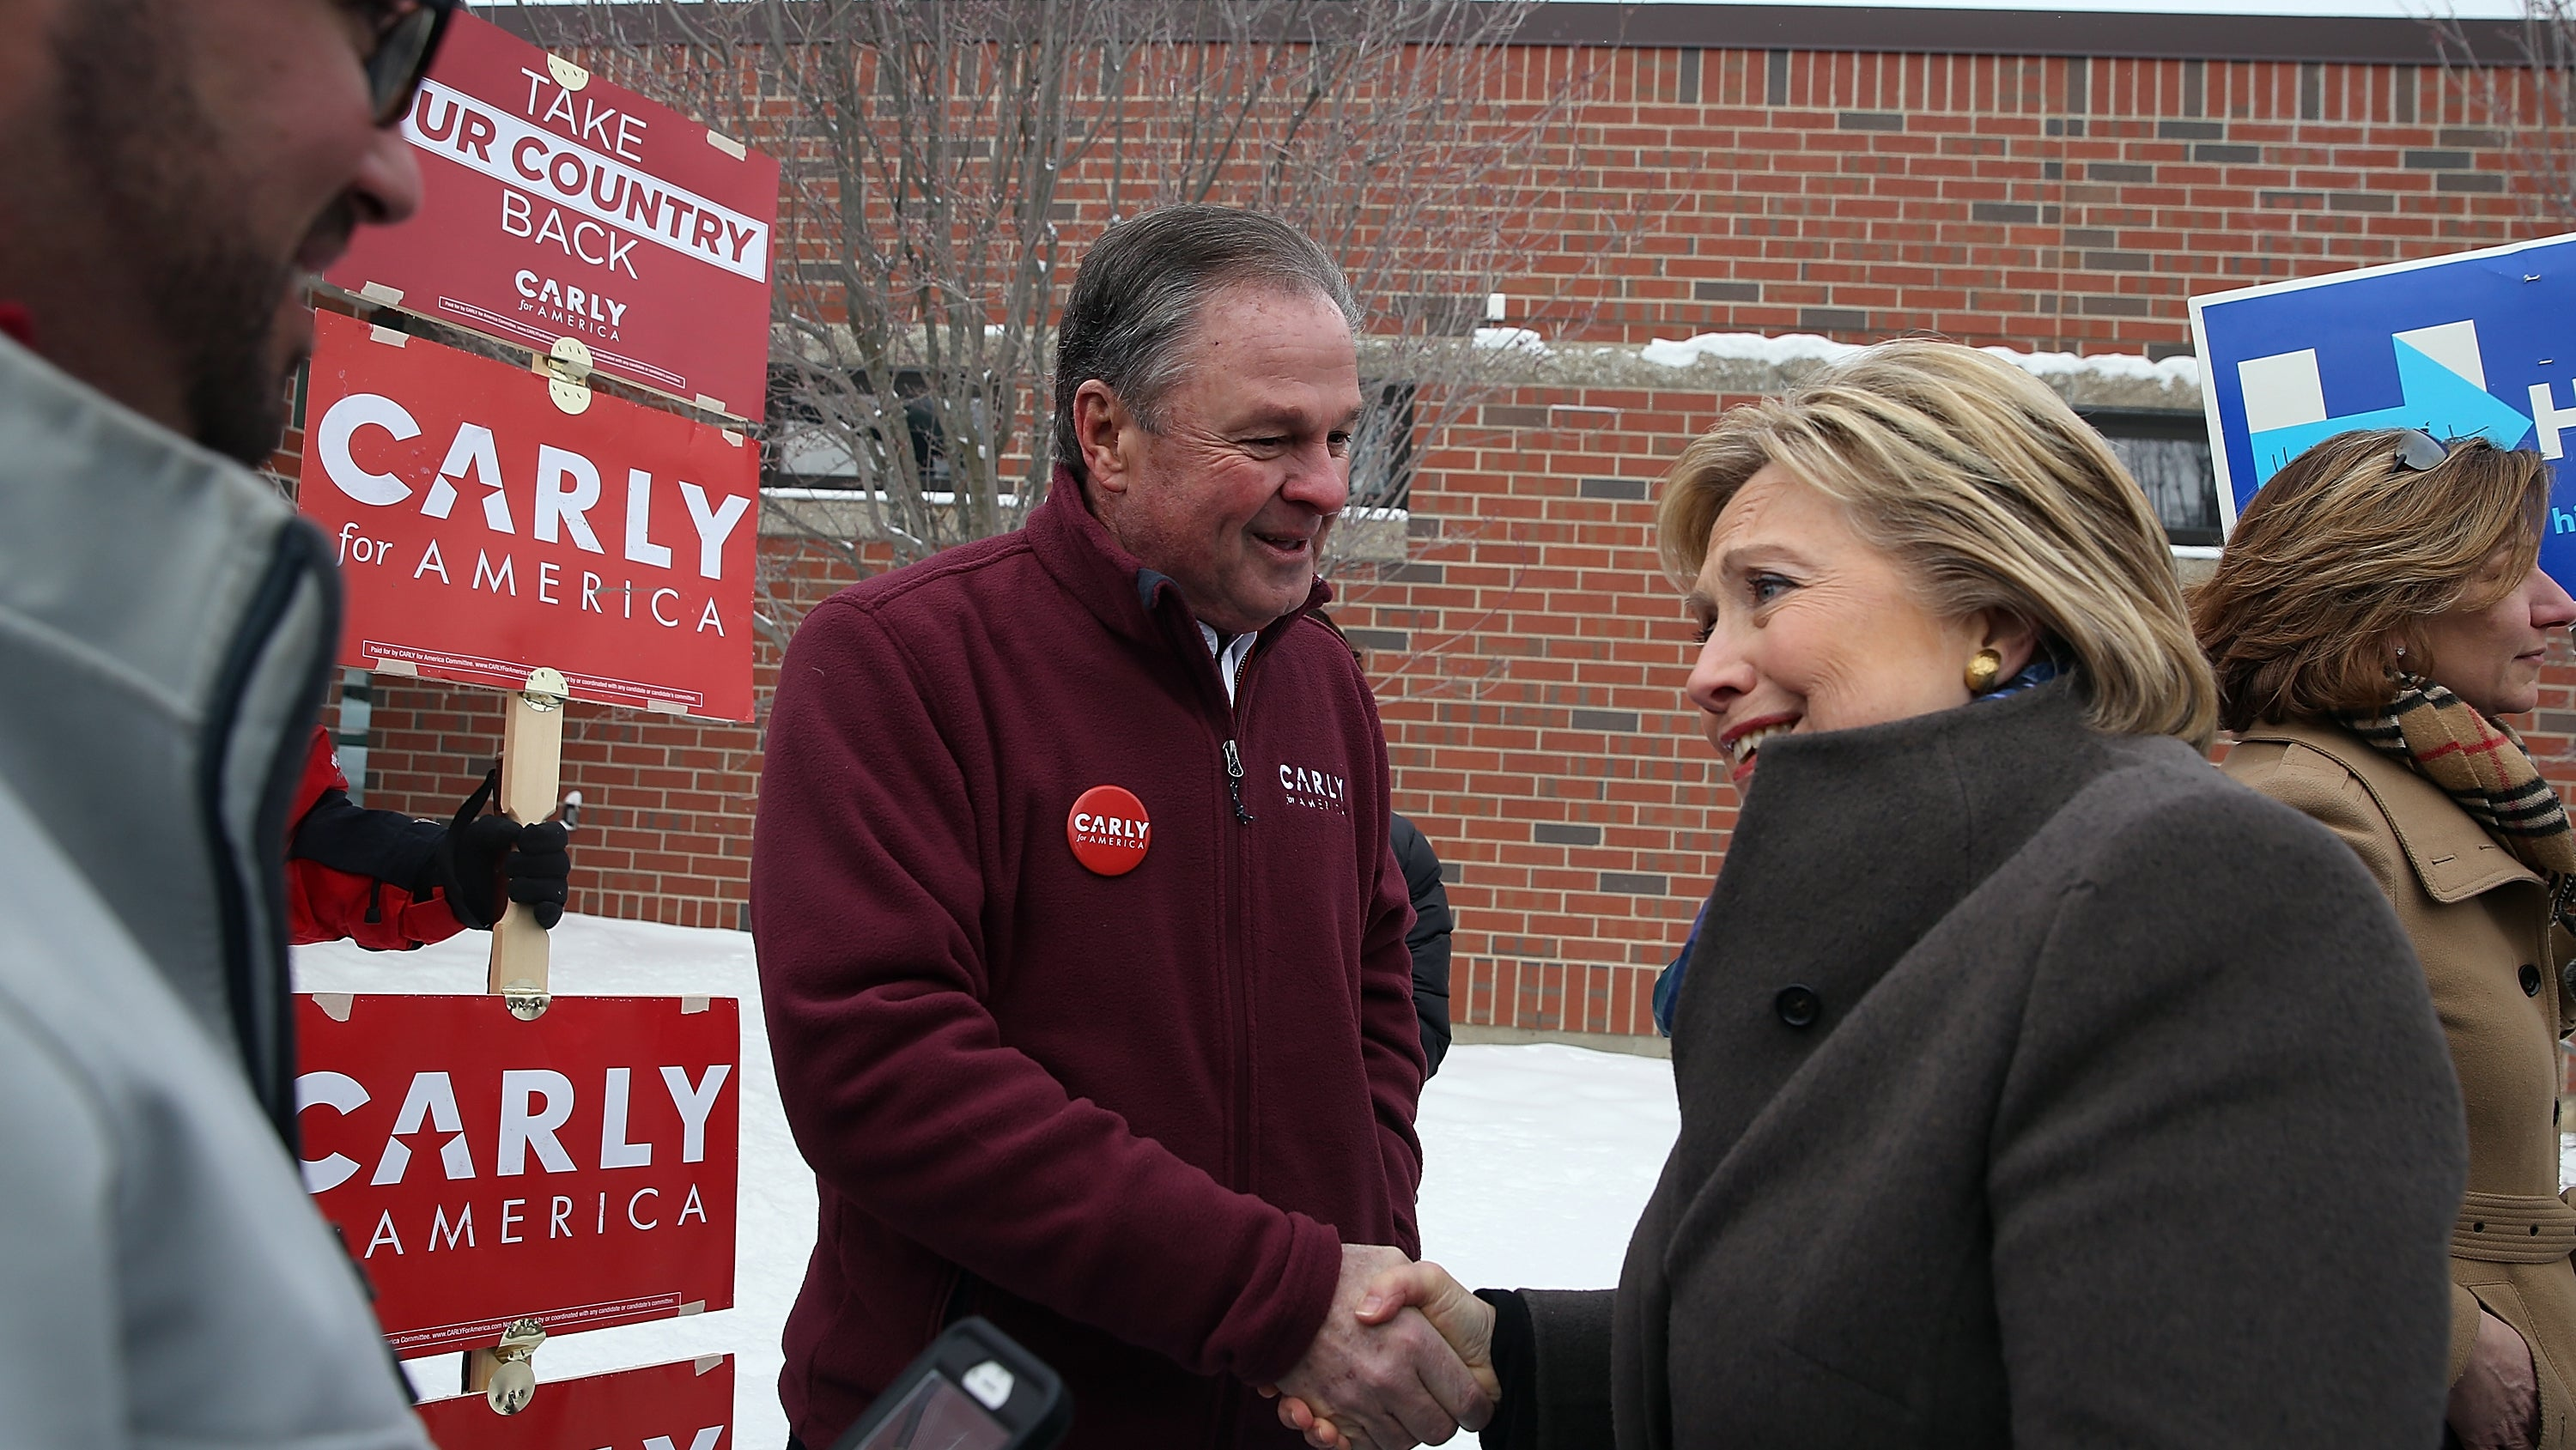 Clinton greets Frank Fiorina, husband of republican presidential candidate Carly Fiorina, outside of a polling station at Gilbert H. Hood Middle School in Derry, New Hampshire.